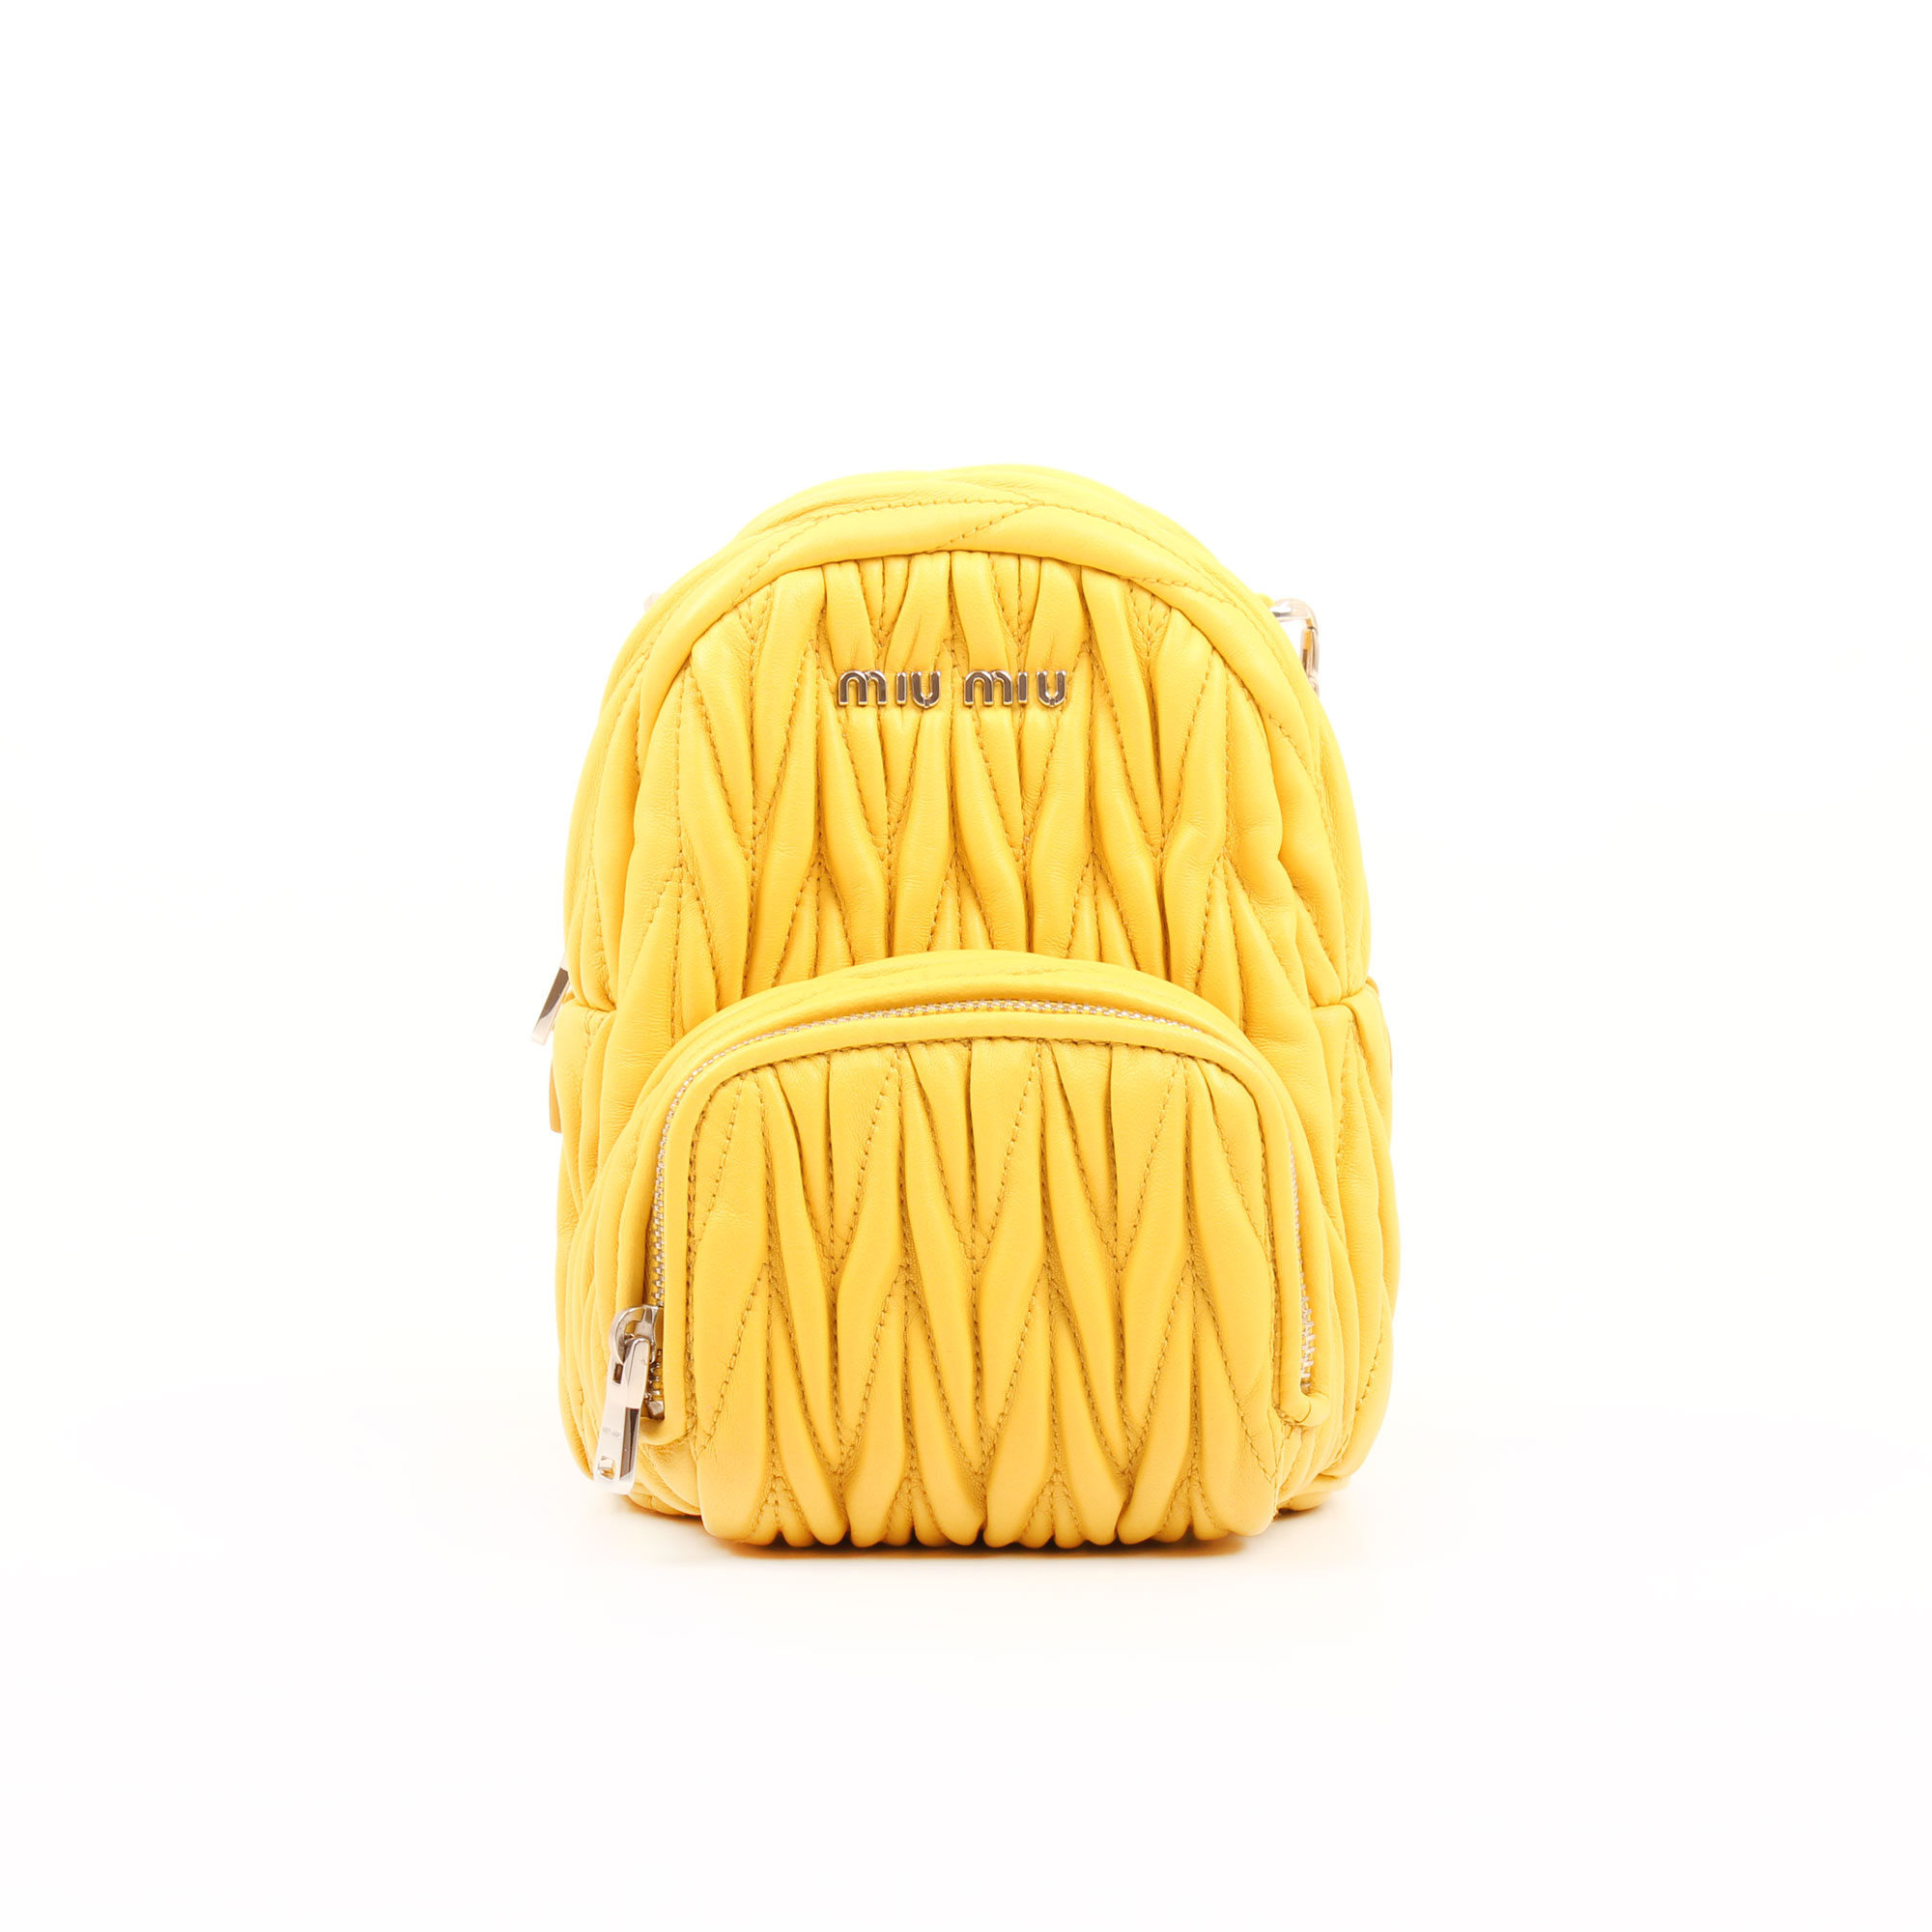 miu miu mini bag matelasse sole yellow backpack front